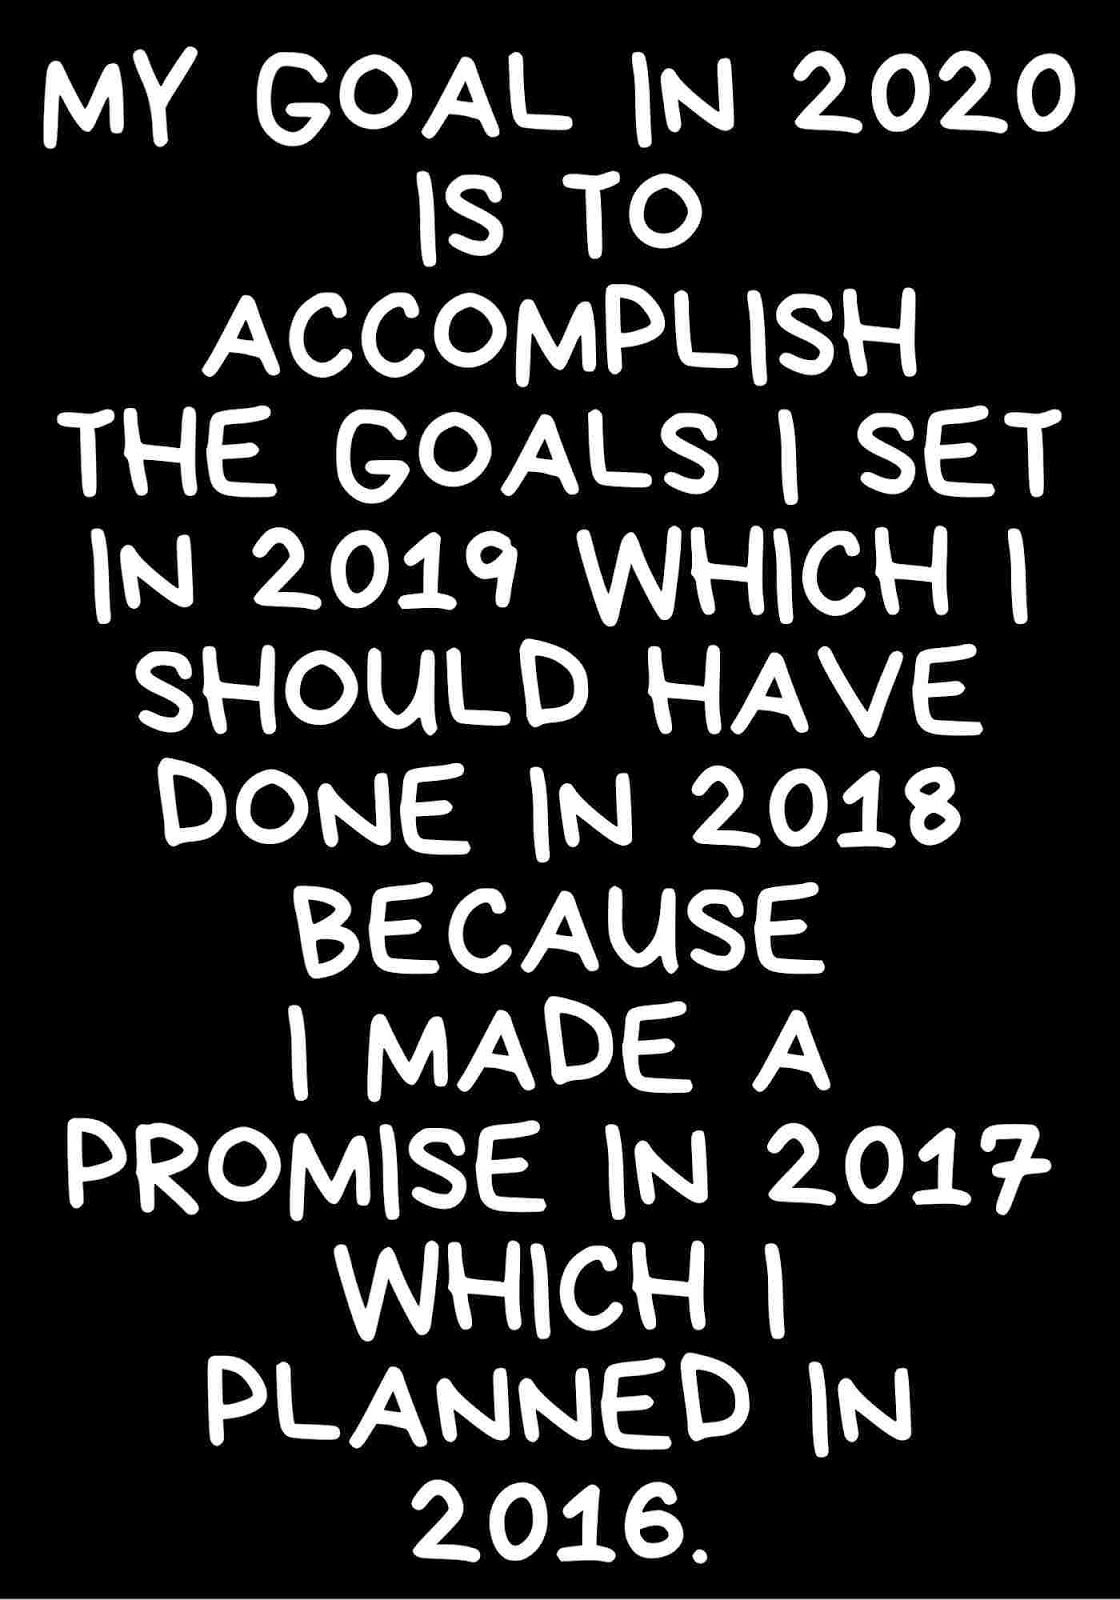 Quotes Zoom In New Year Goals Friday Quotes Funny Quotes About New Year Its Friday Quotes